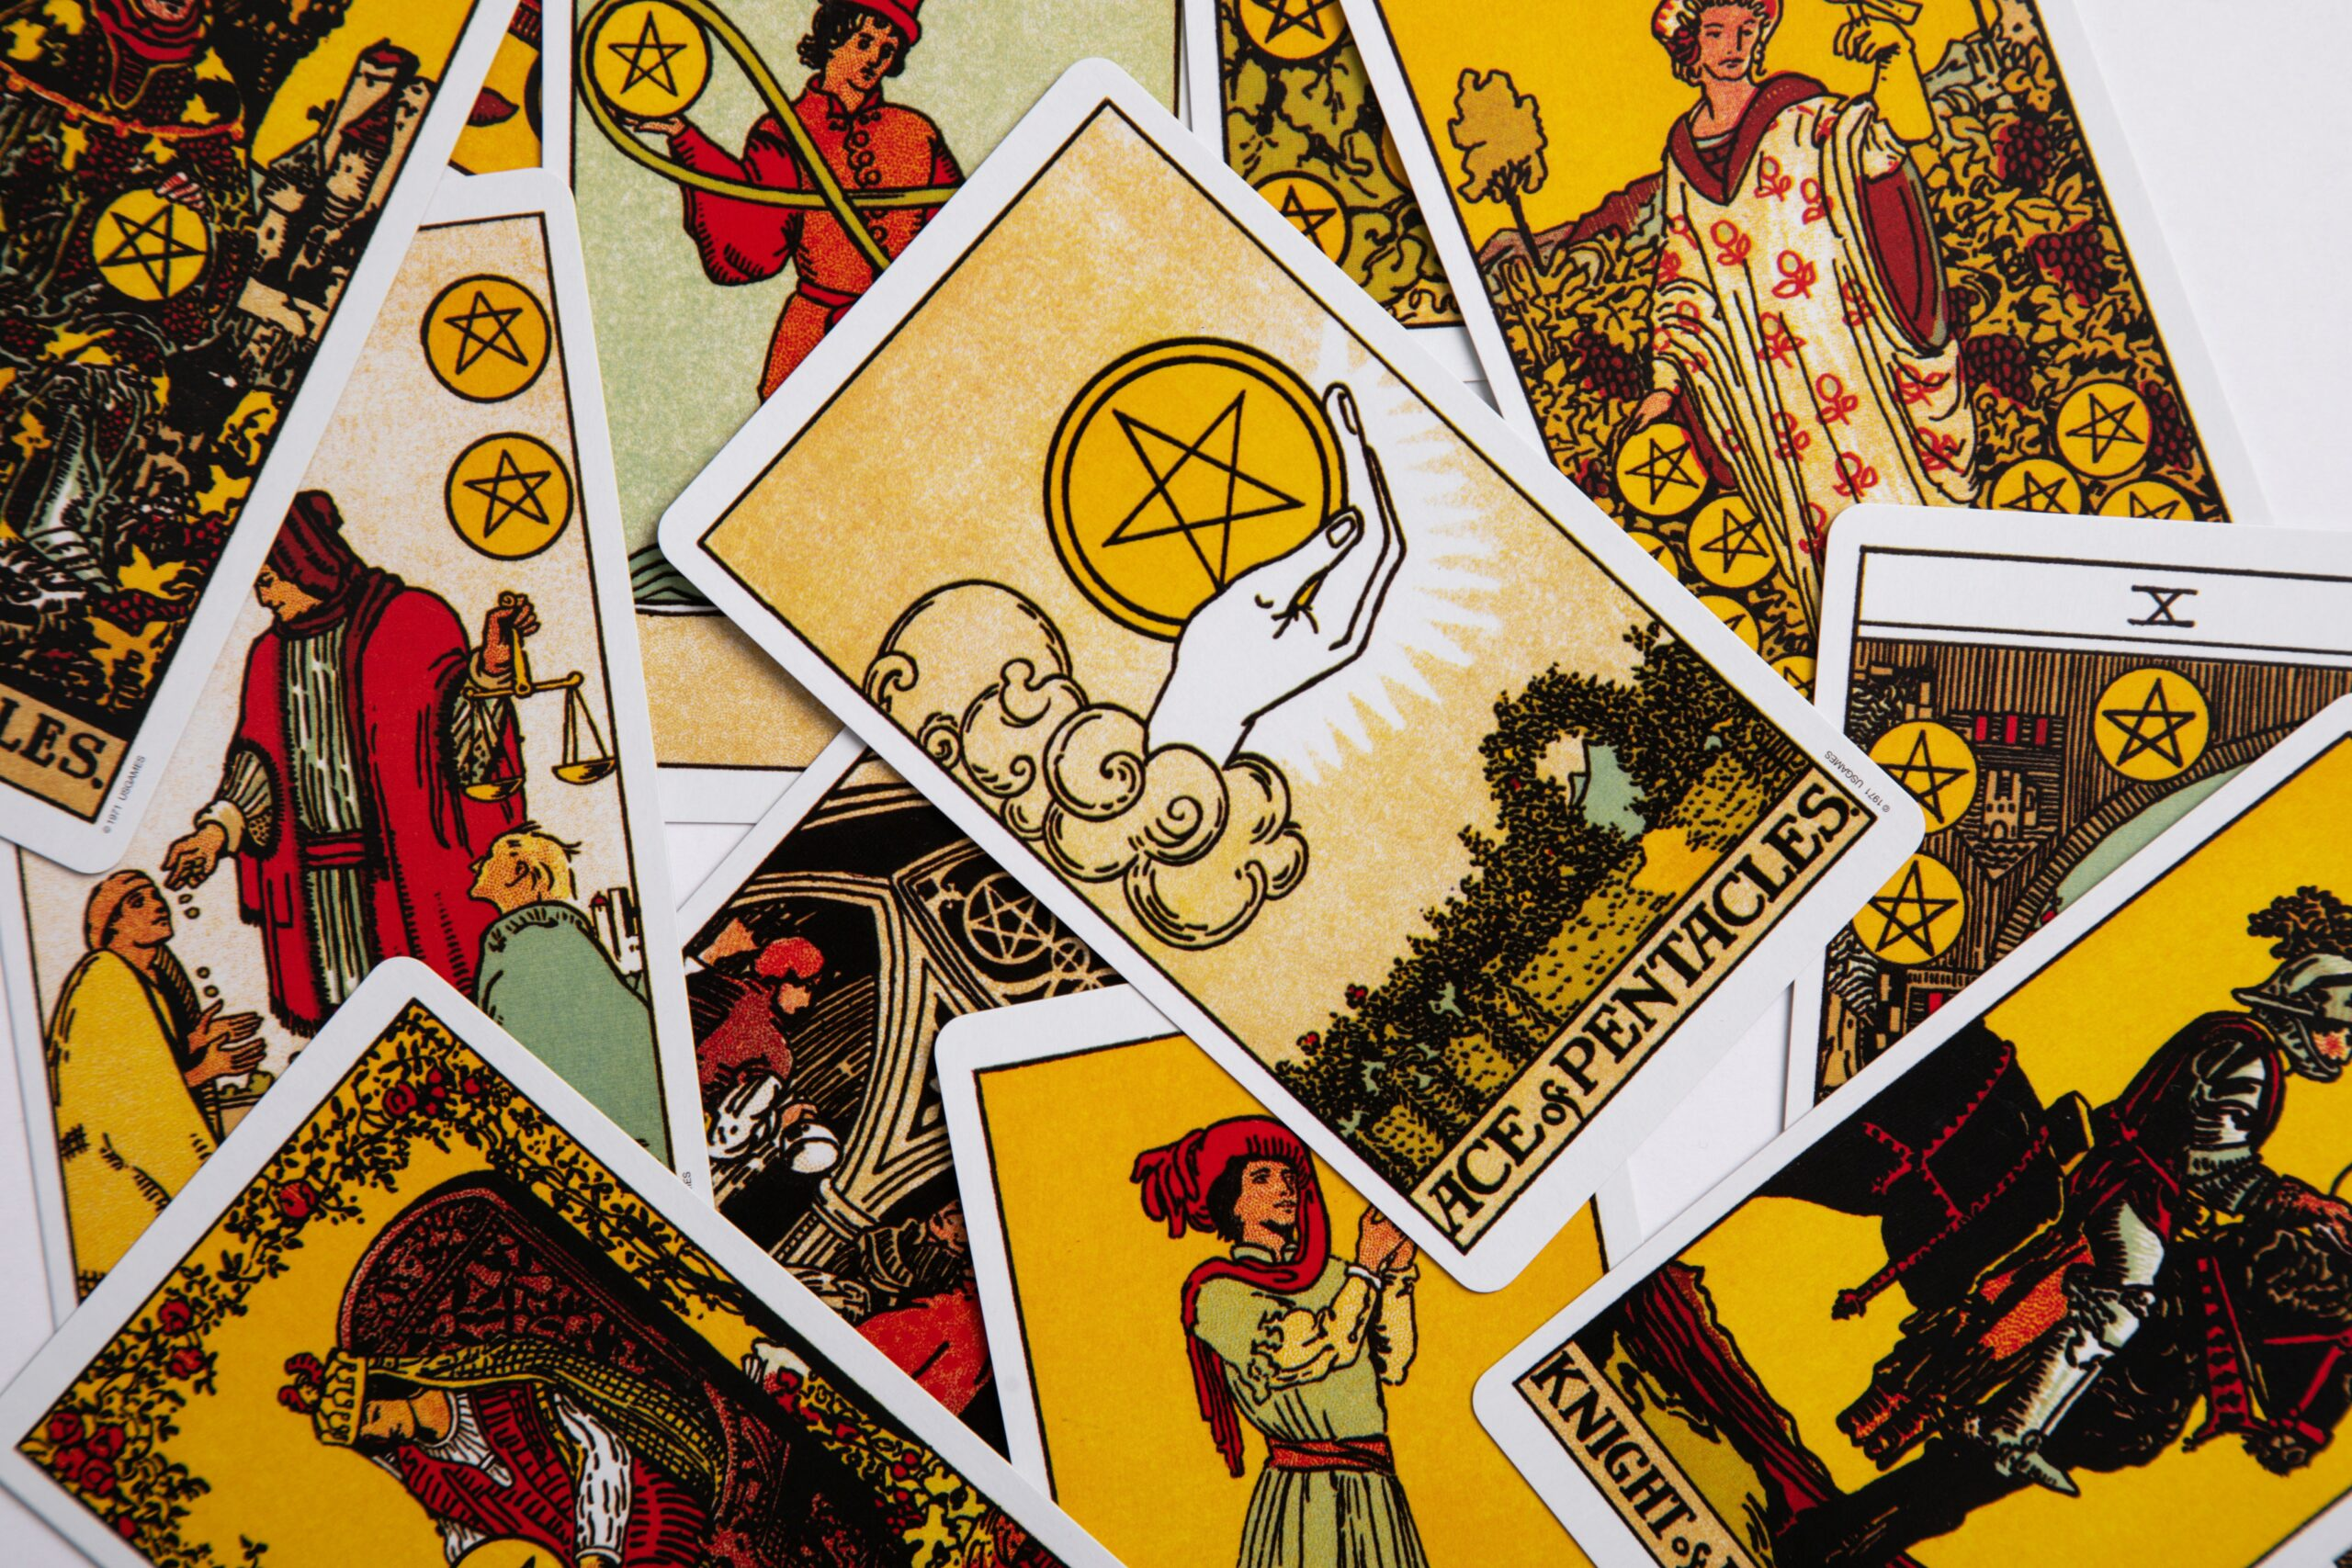 Summertime Tarot and Astrological Pairings